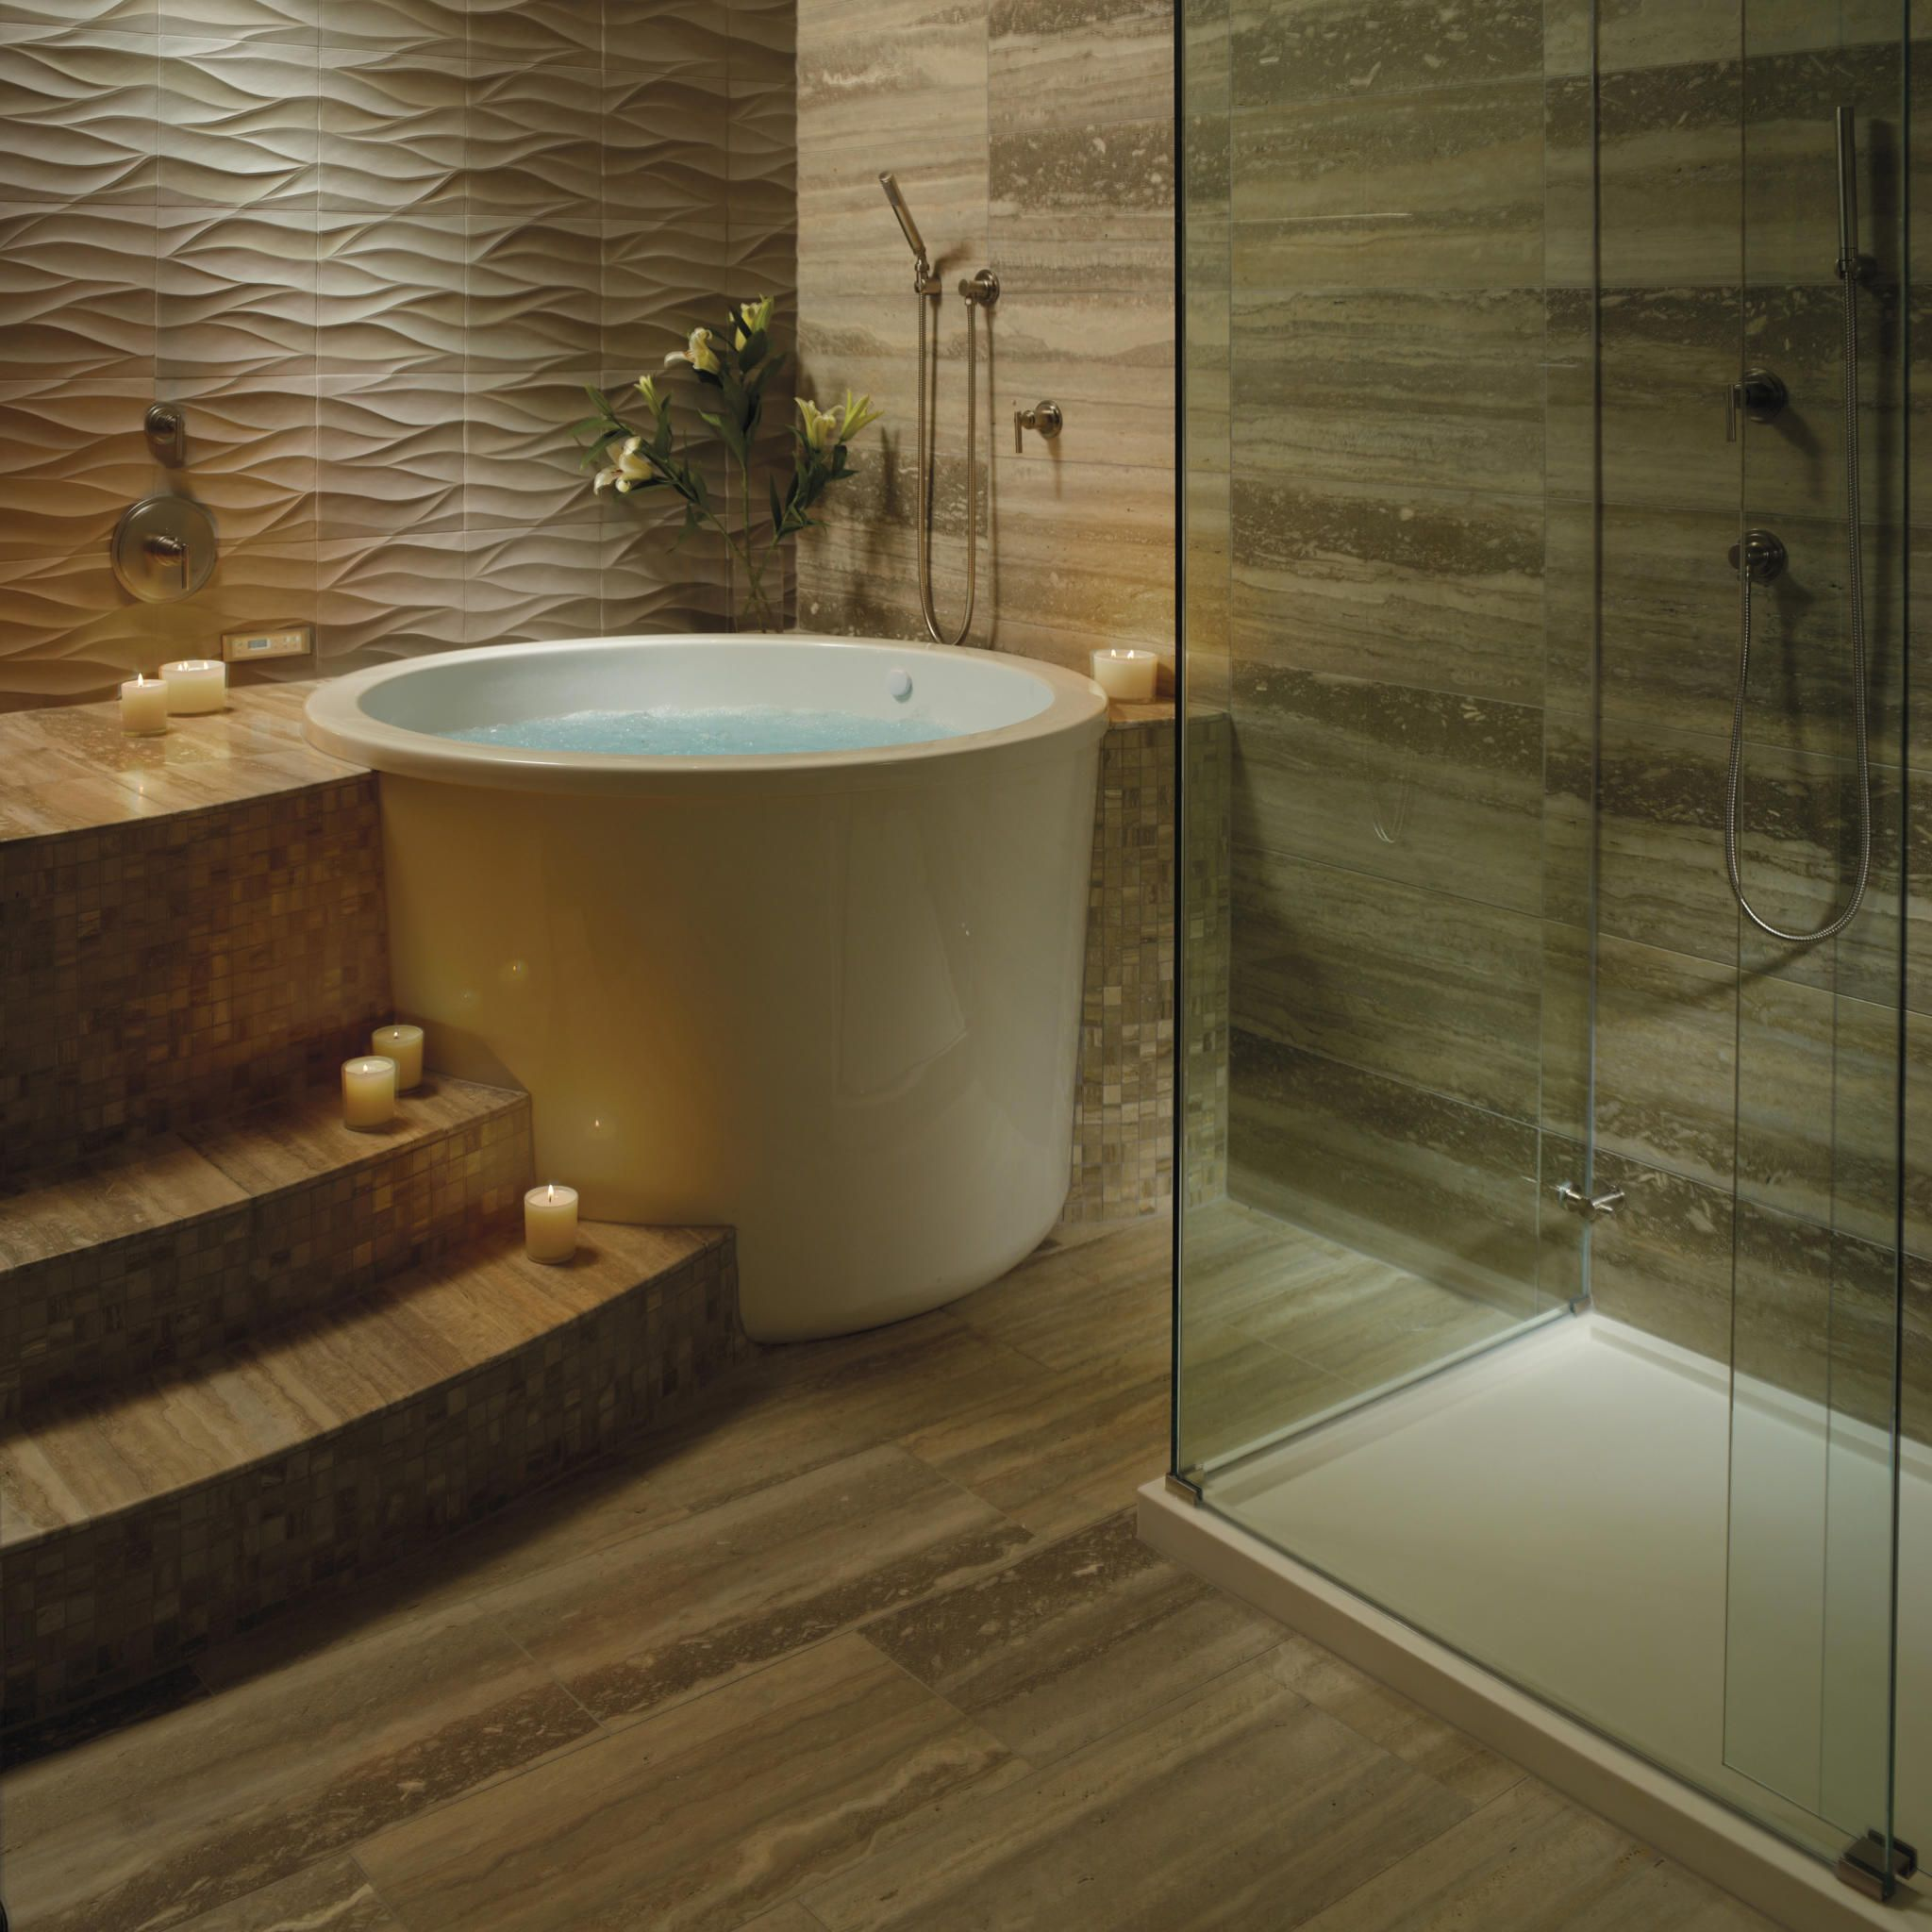 Compact comfort the japanese tub beautiful living - Soaking tubs for small bathrooms ...